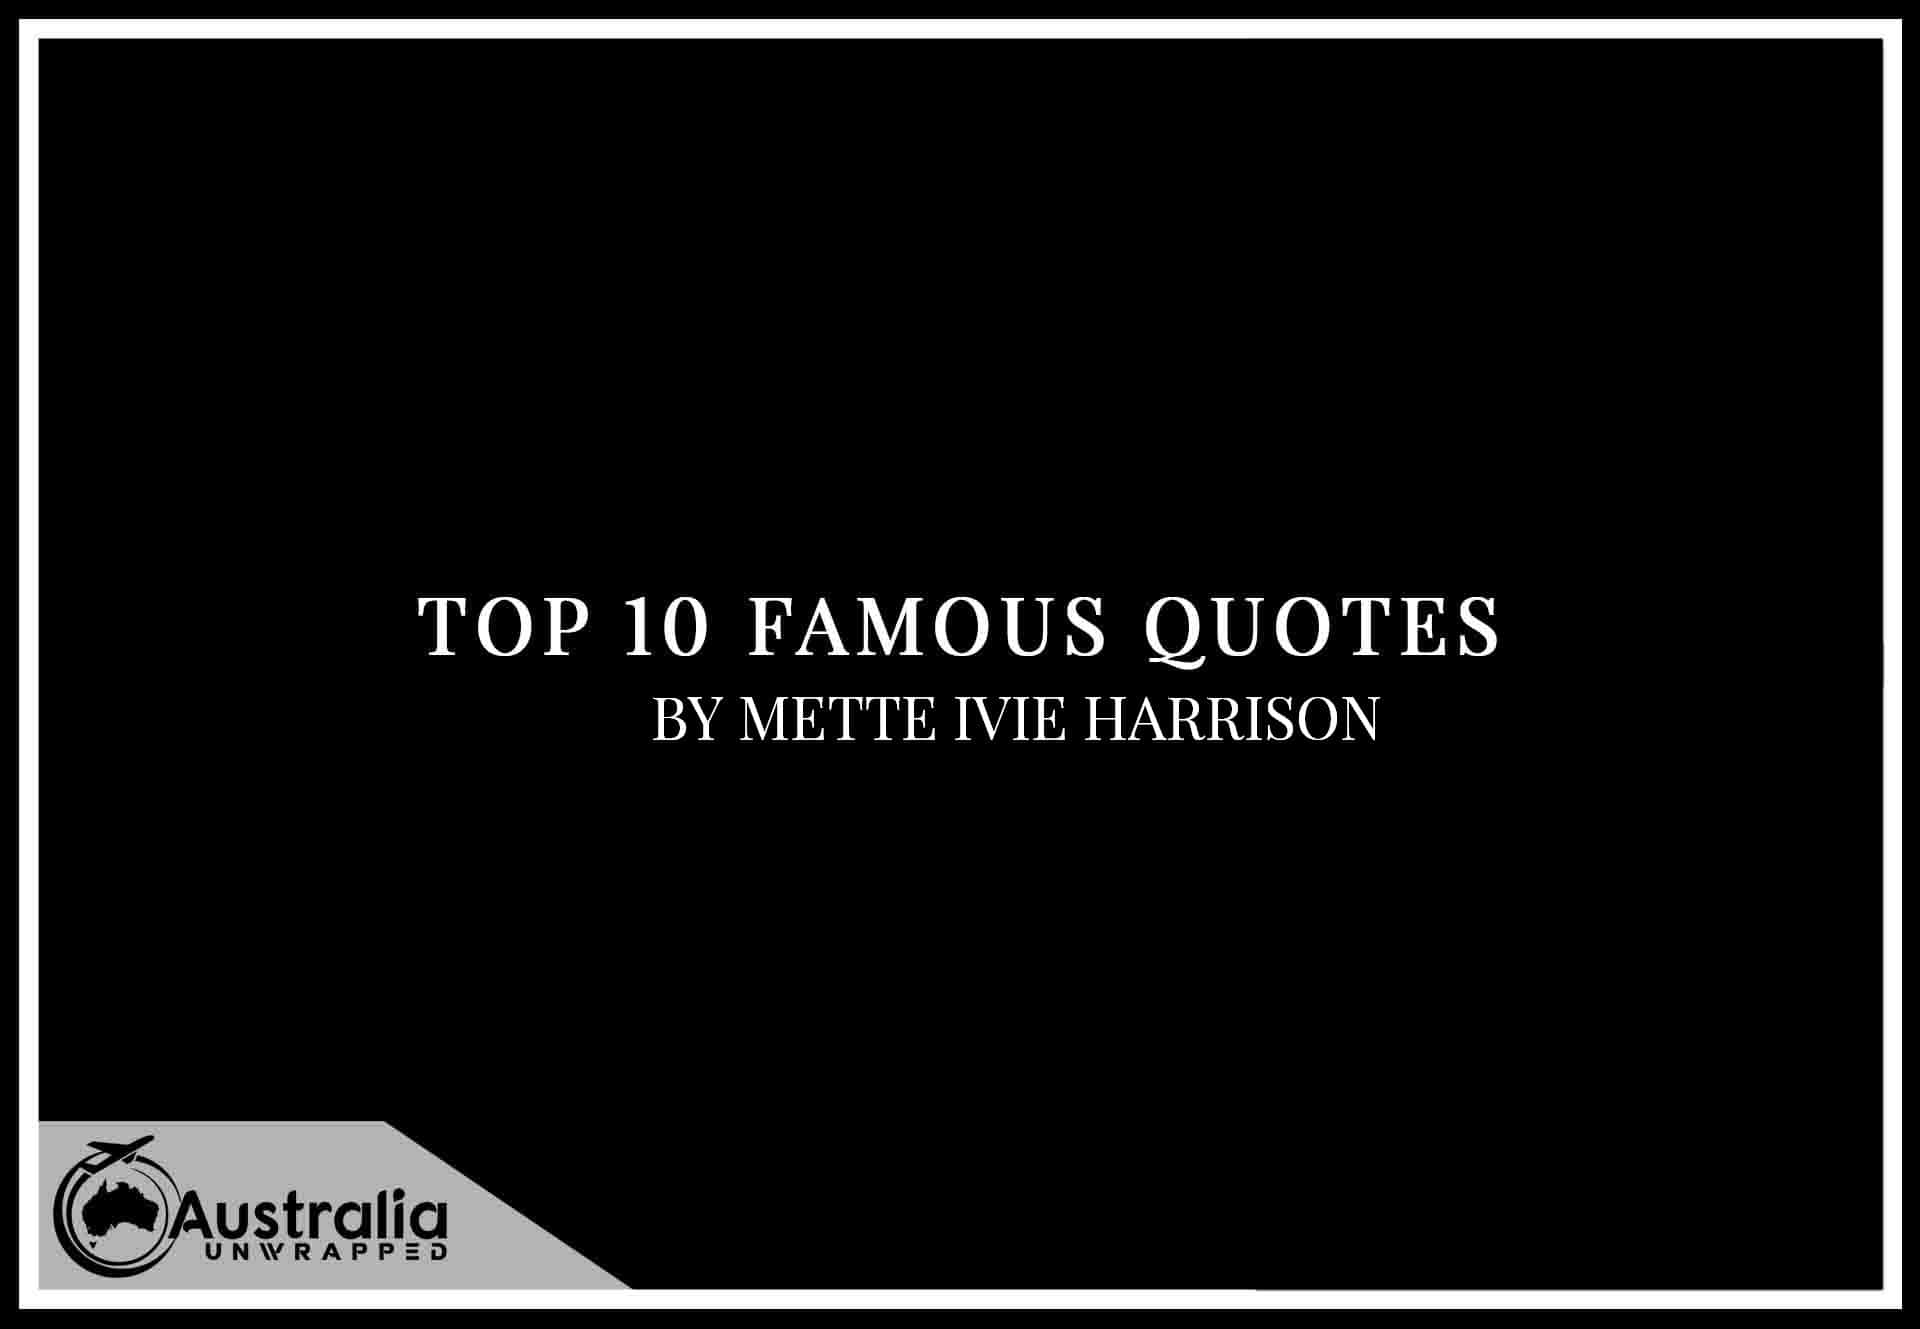 Top 10 Famous Quotes by Author Mette Ivie Harrison